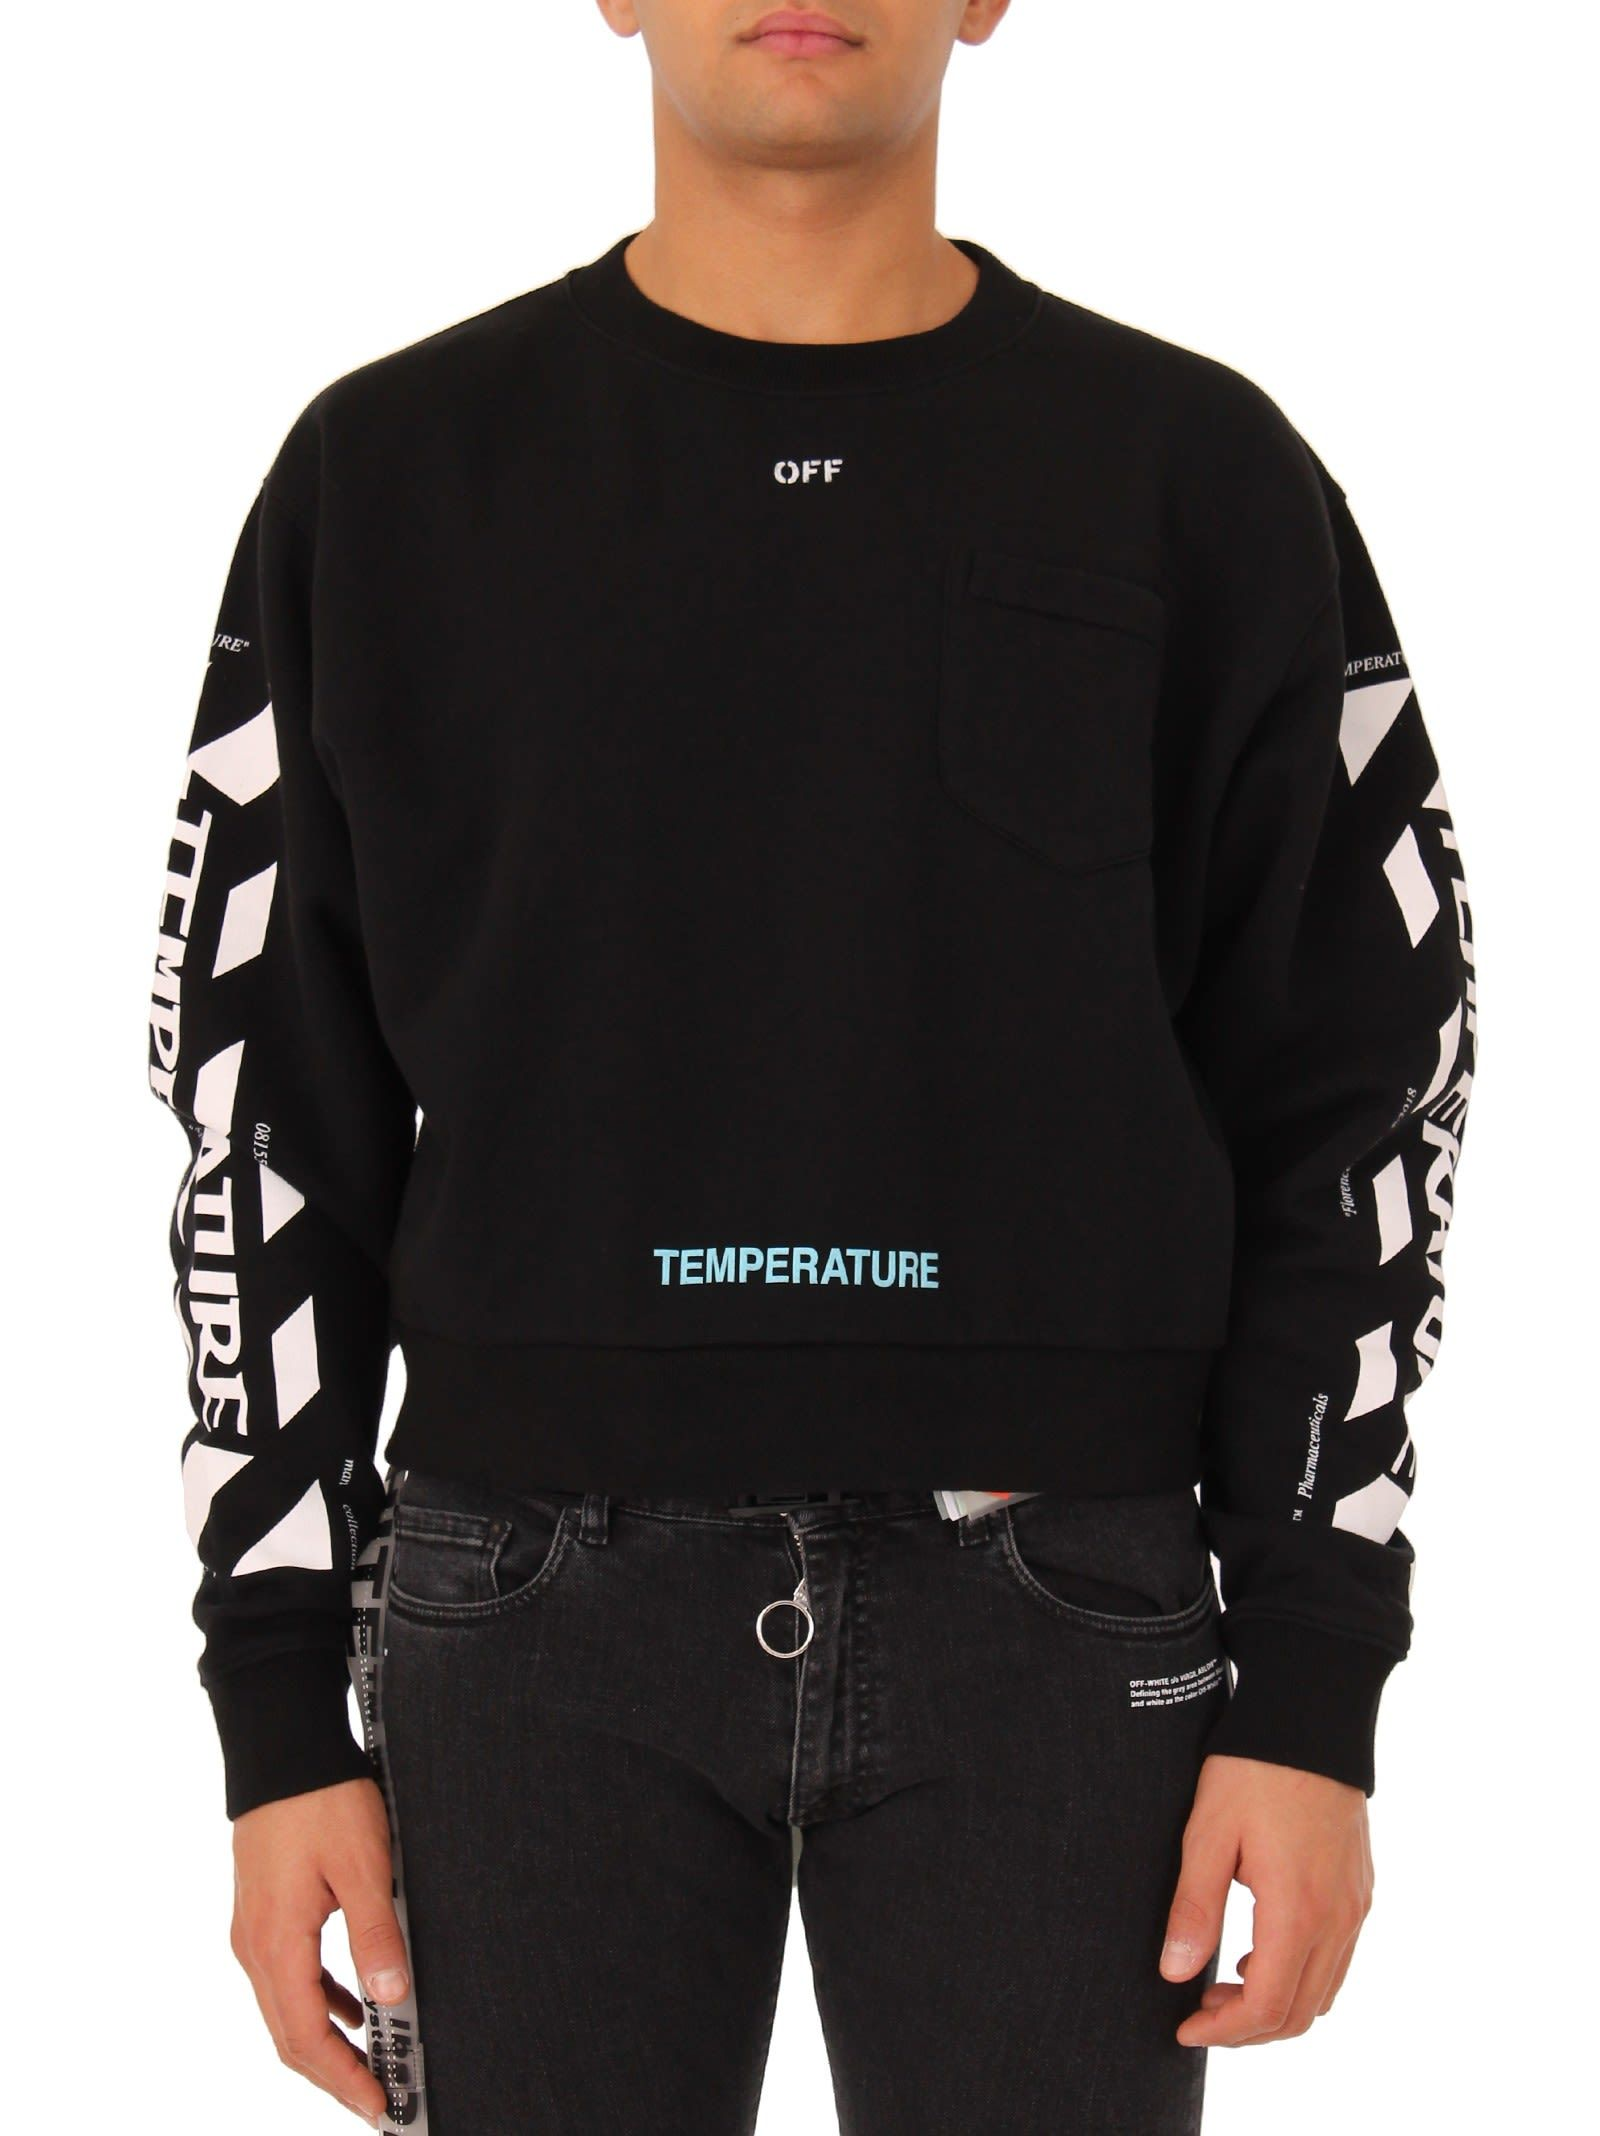 40f37bf0 OFF-WHITE BLACK TEMPERATURE CREWNECK. #off-white #cloth # | Off ...